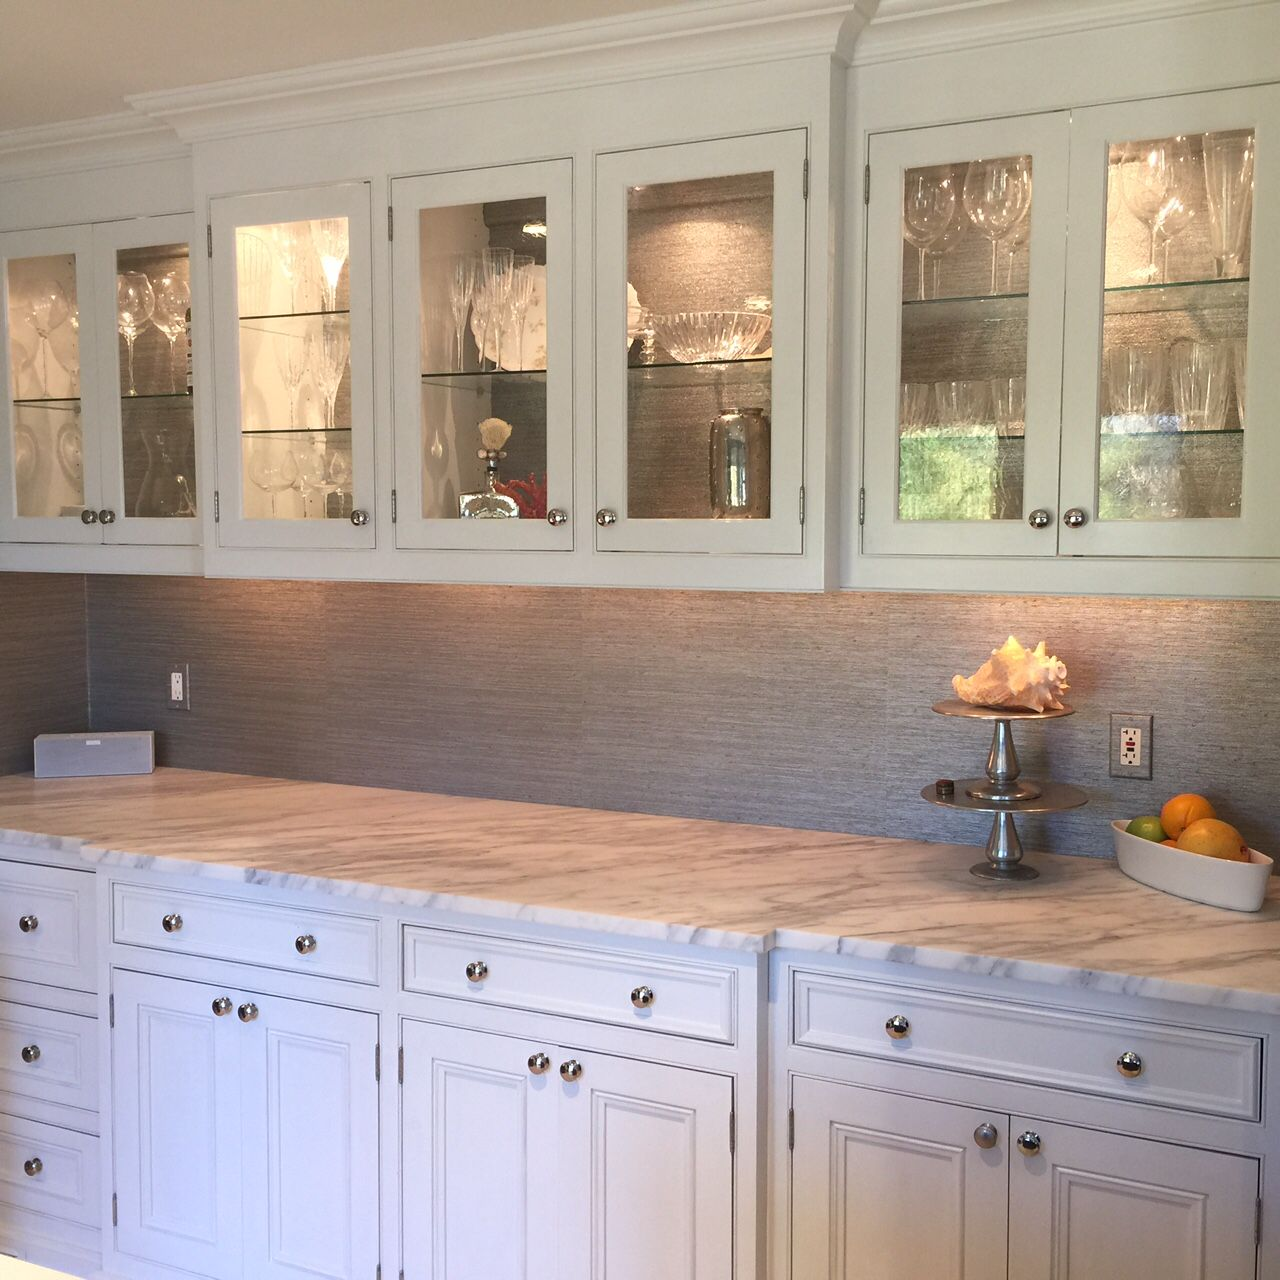 Easy And Affordable Kitchen Cabinet Refacing Ideas Affordable Kitchen Cabinets Refacing Kitchen Cabinets Kitchen Redo